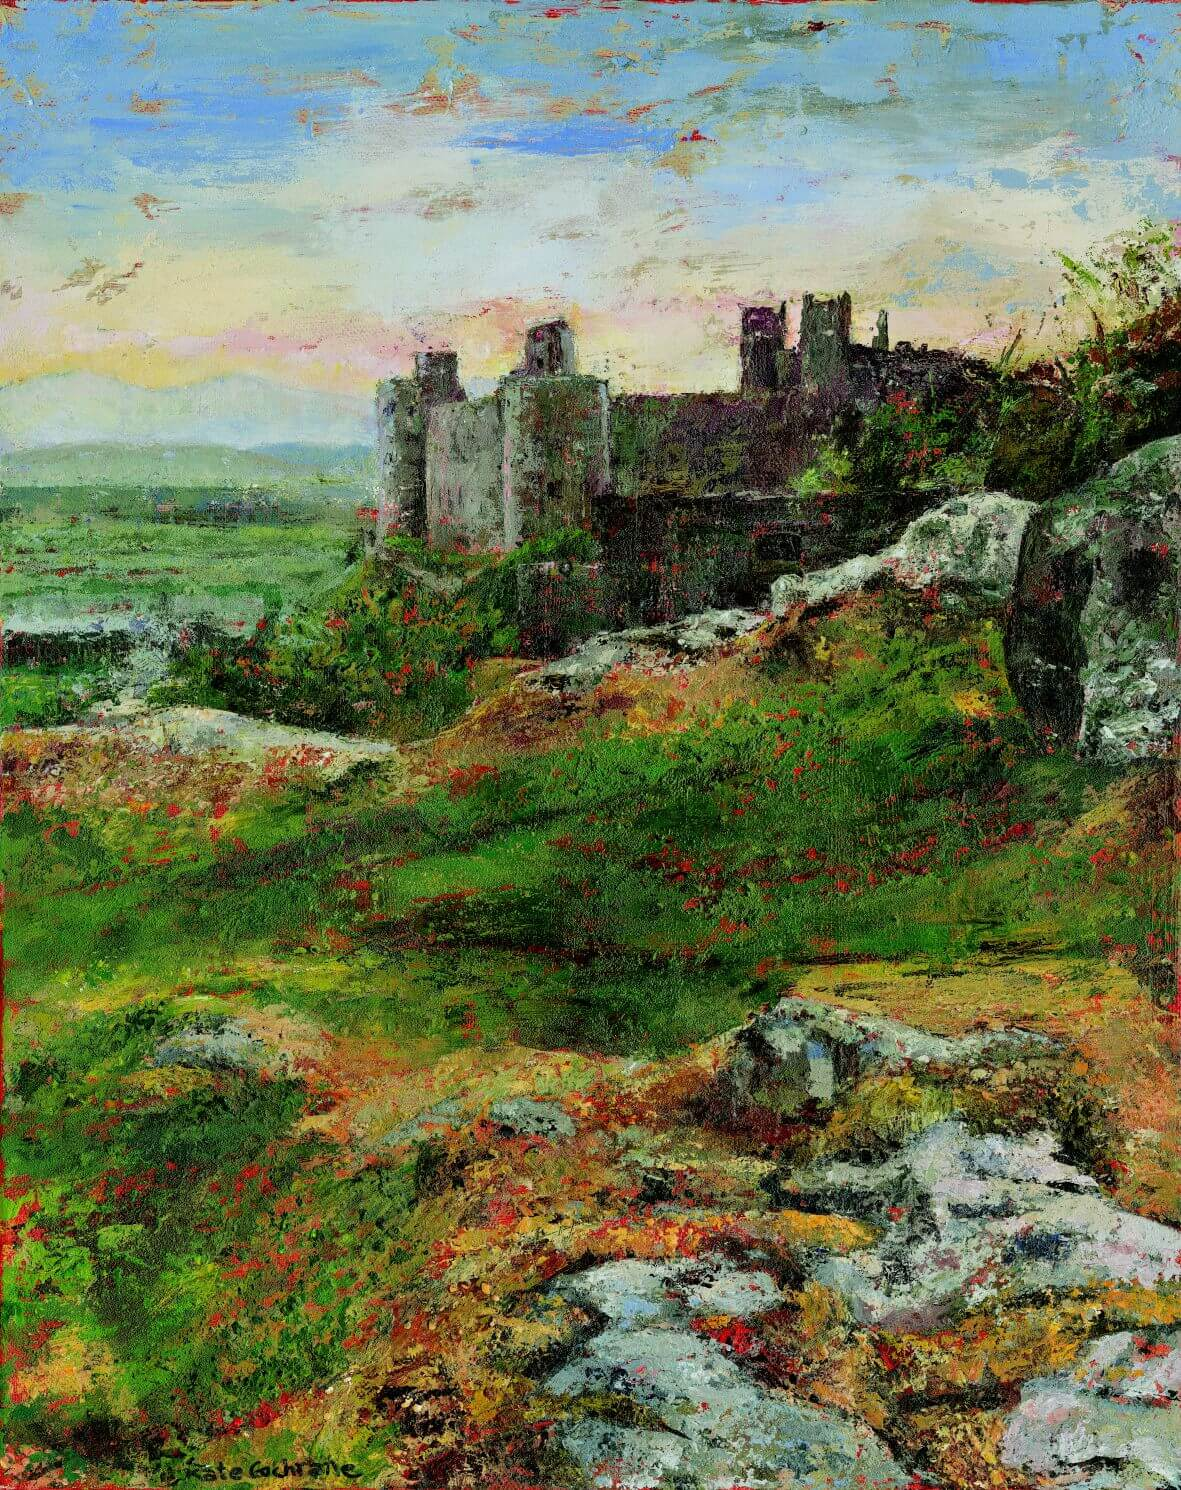 'Under the Stones', Harlech Castle